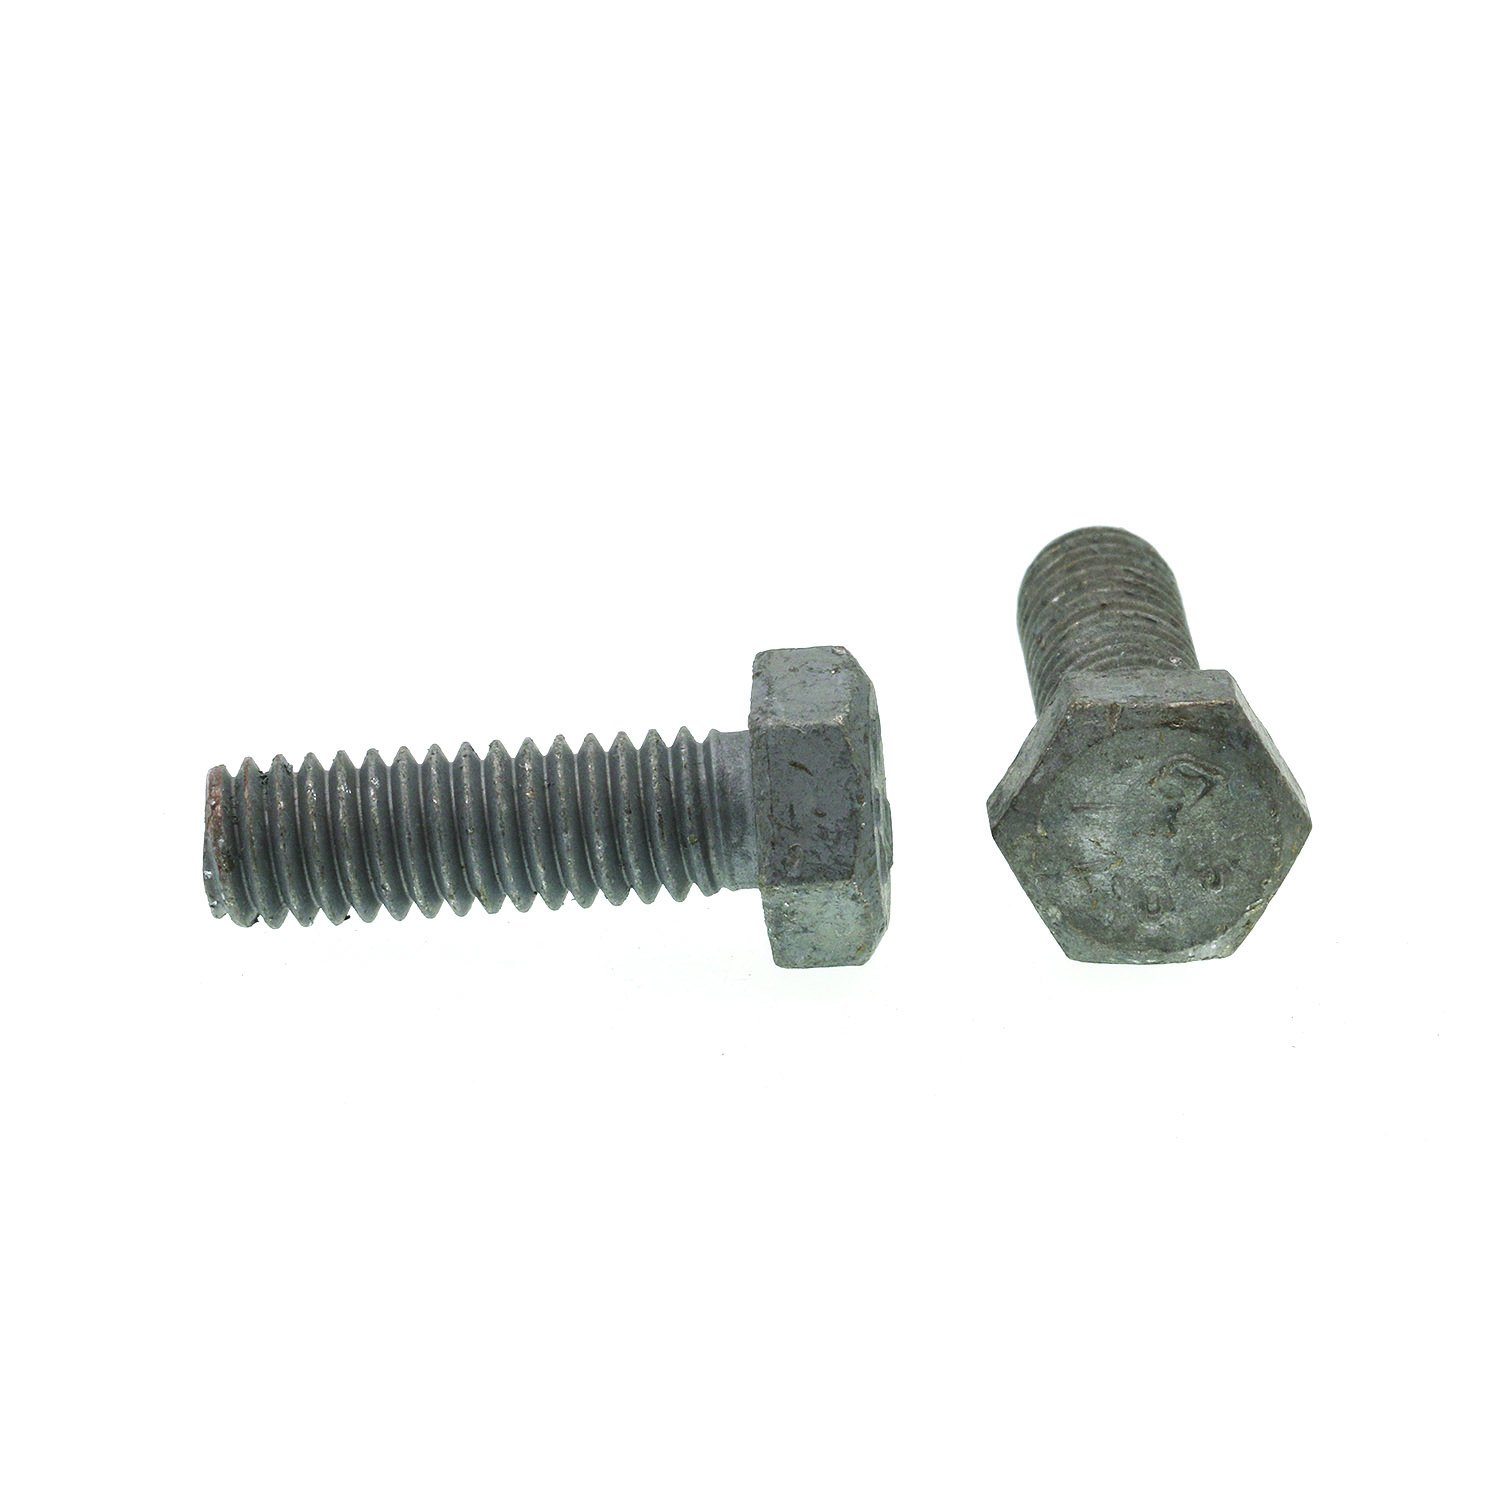 5//16 in.-18 X 1 in. A307 Grade A Hot Dip Galvanized Steel Prime-Line 9058973 Hex Bolts 25-Pack